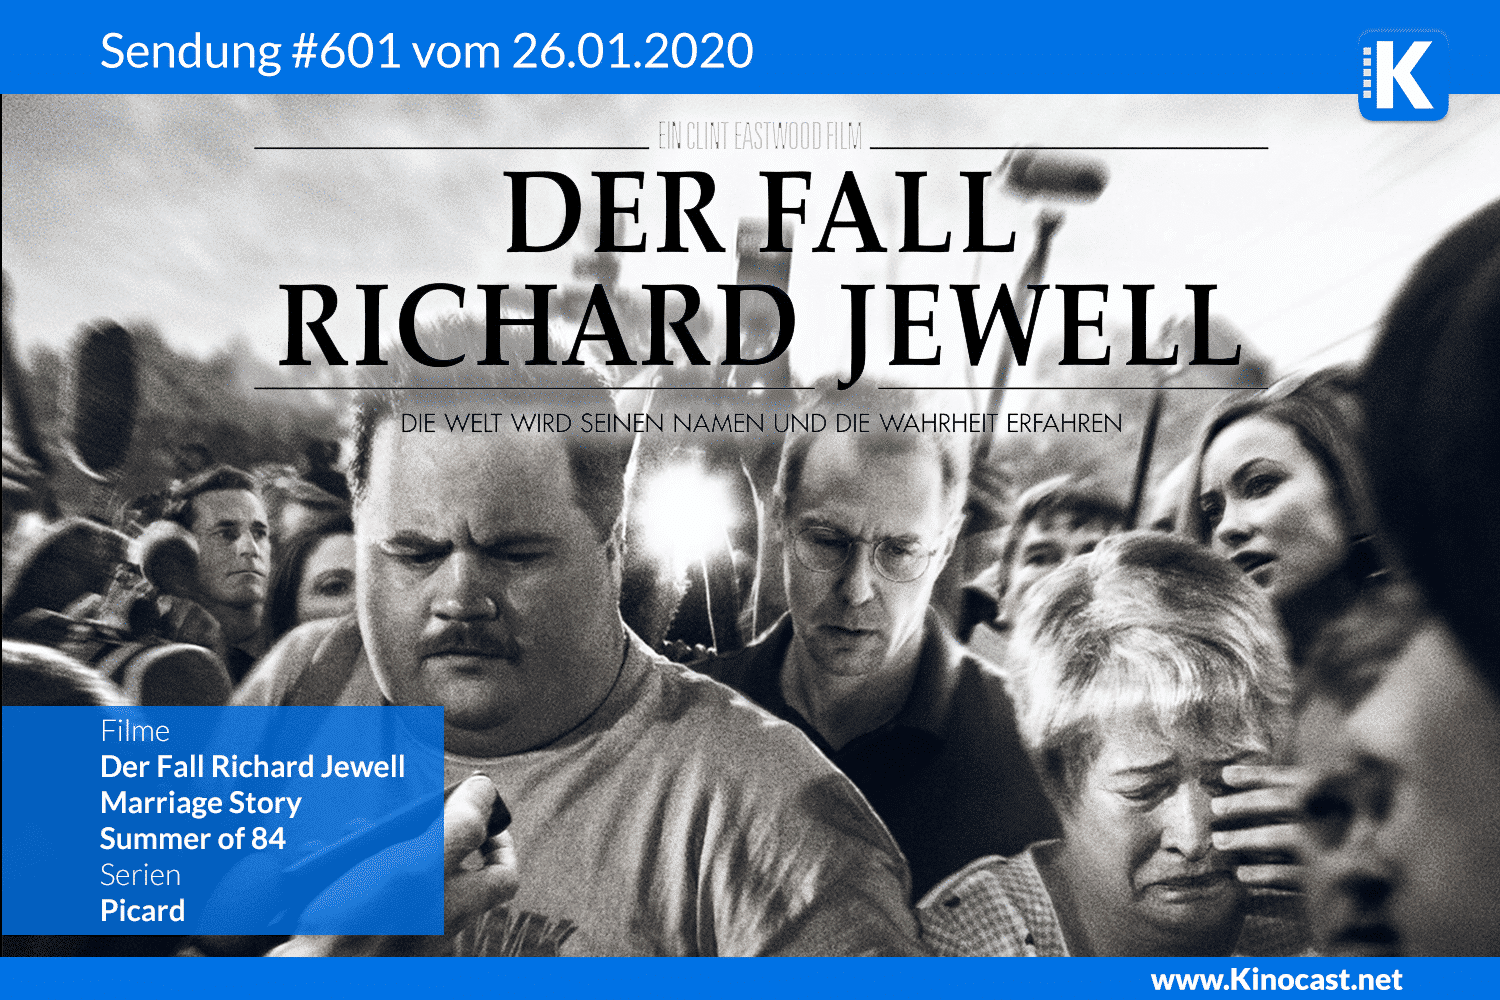 Der Fall Richard Jewell Marriage Story Summer of Picard Download film german deutsch